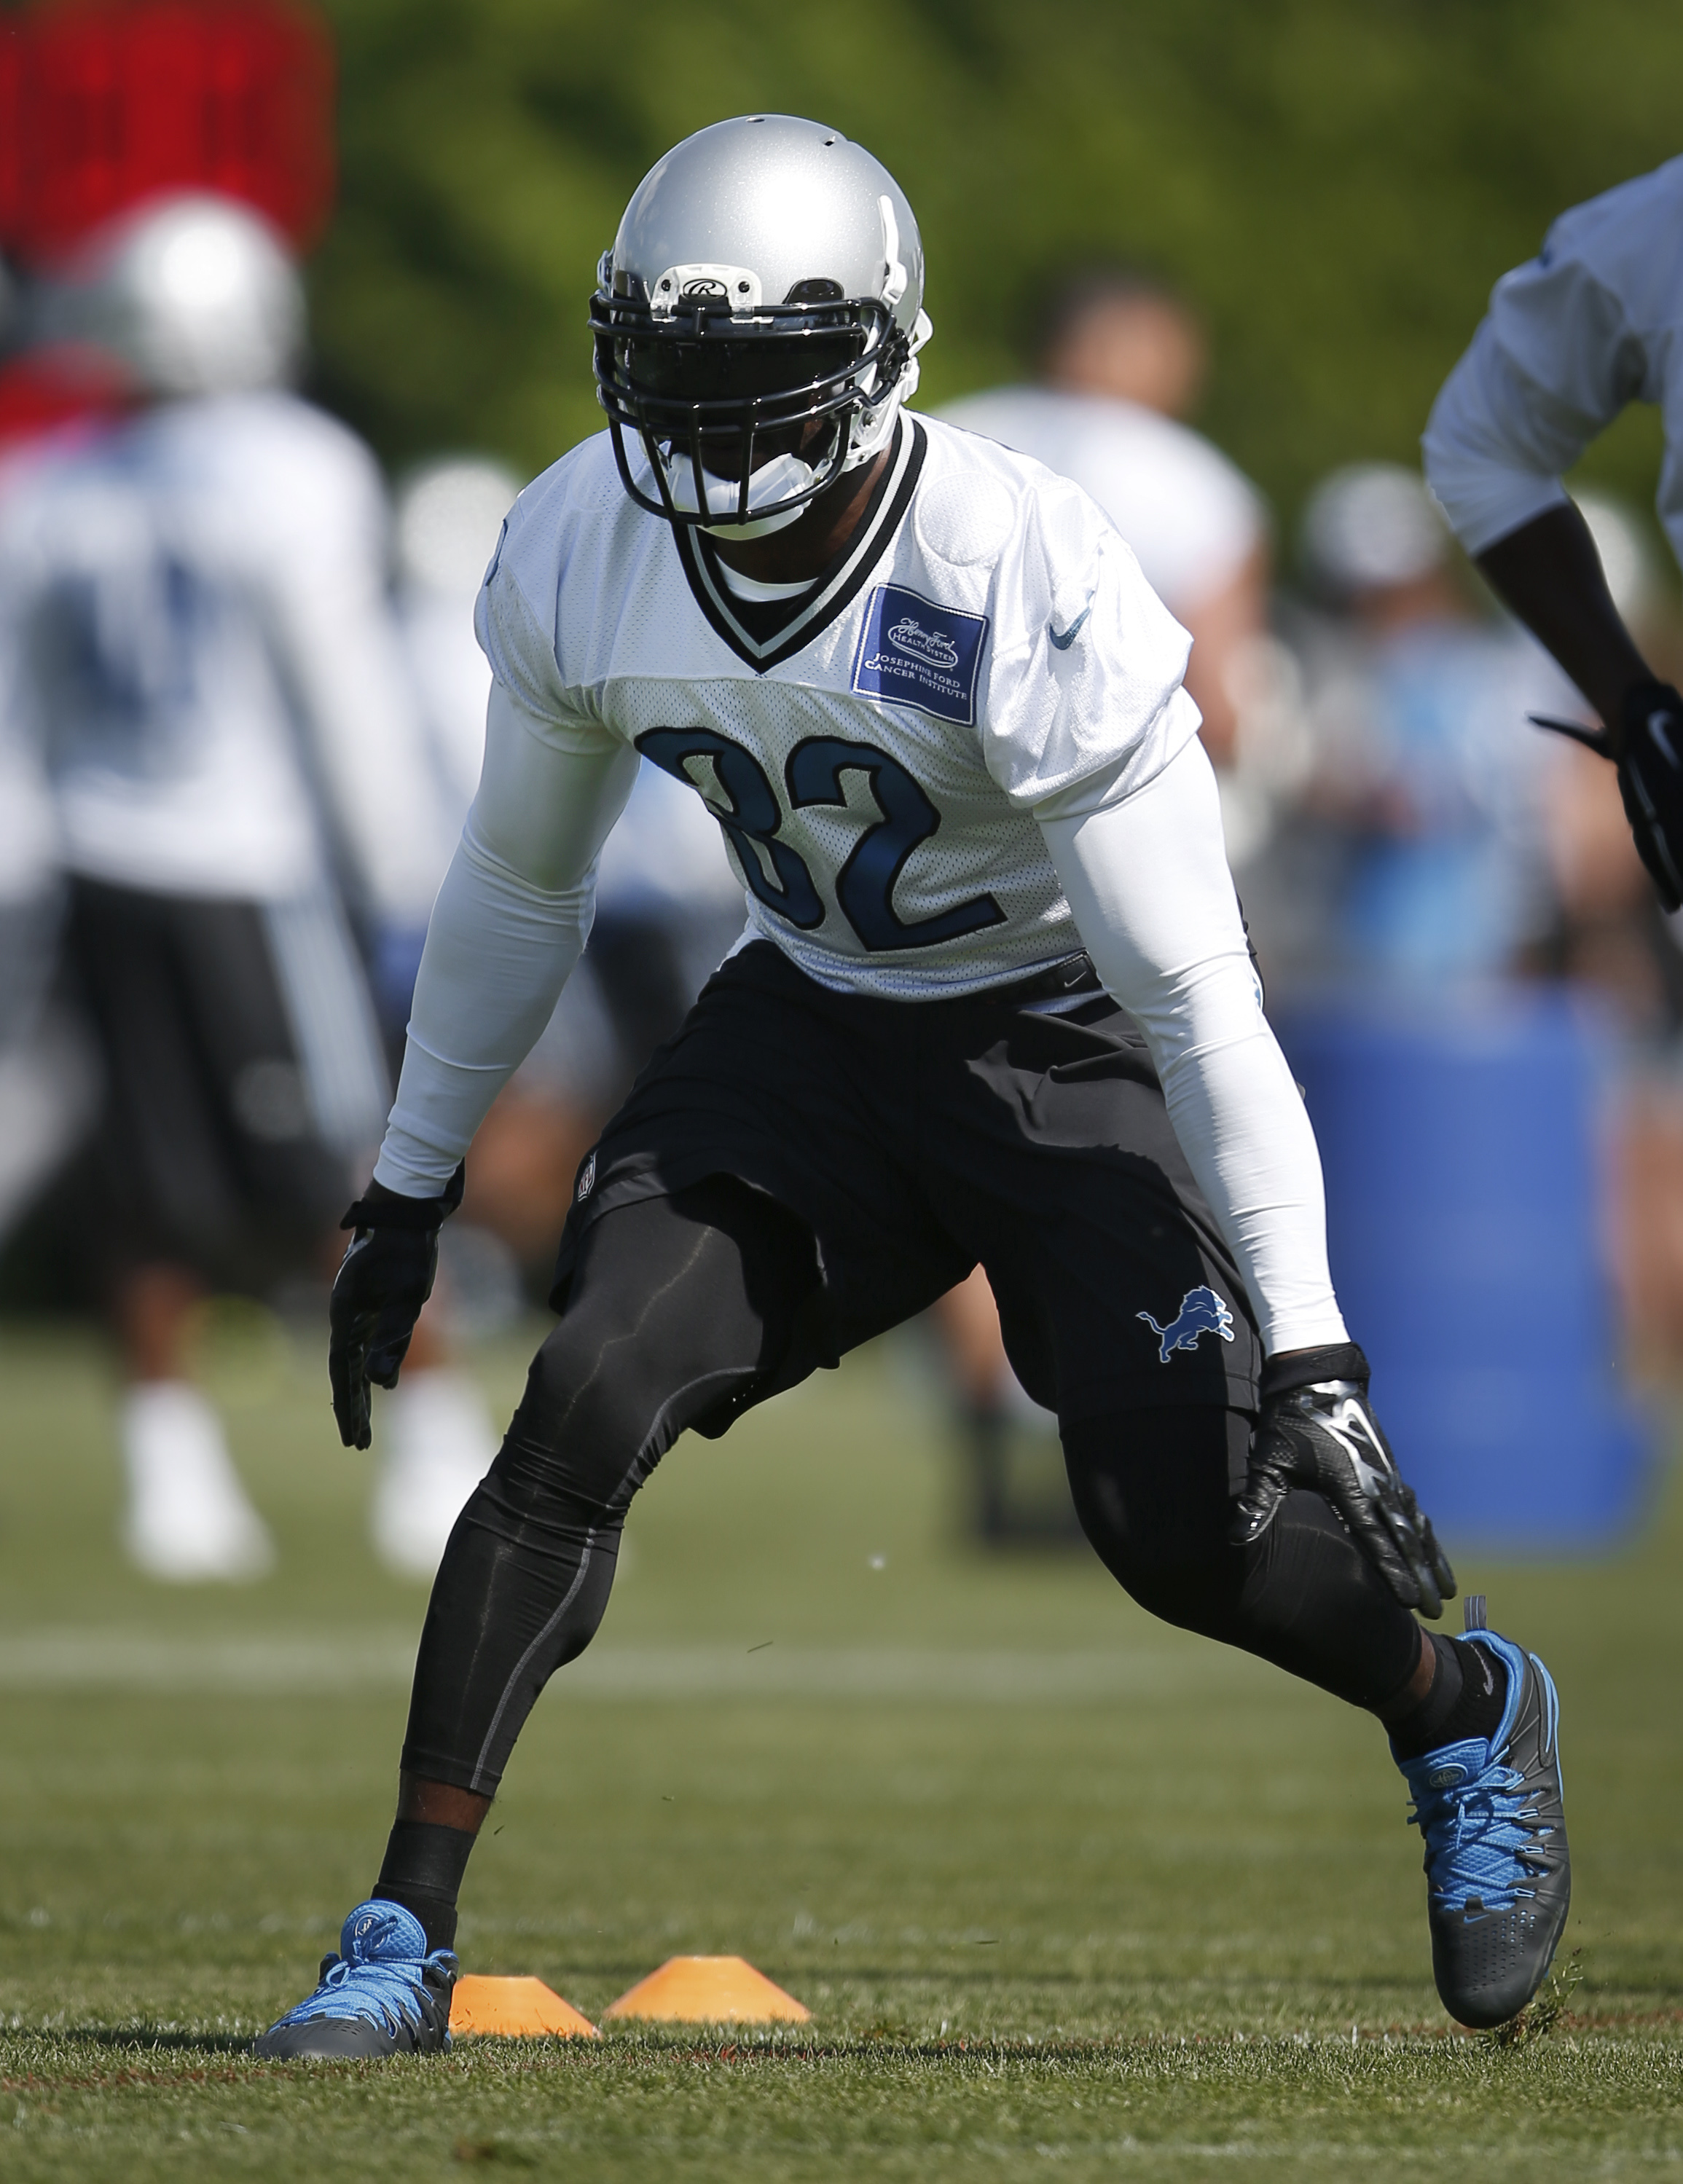 Detroit Lions safety James Ihedigbo runs during an NFL football organized team activity in Allen Park, Mich., Wednesday, May 27, 2015. (AP Photo/Paul Sancya)